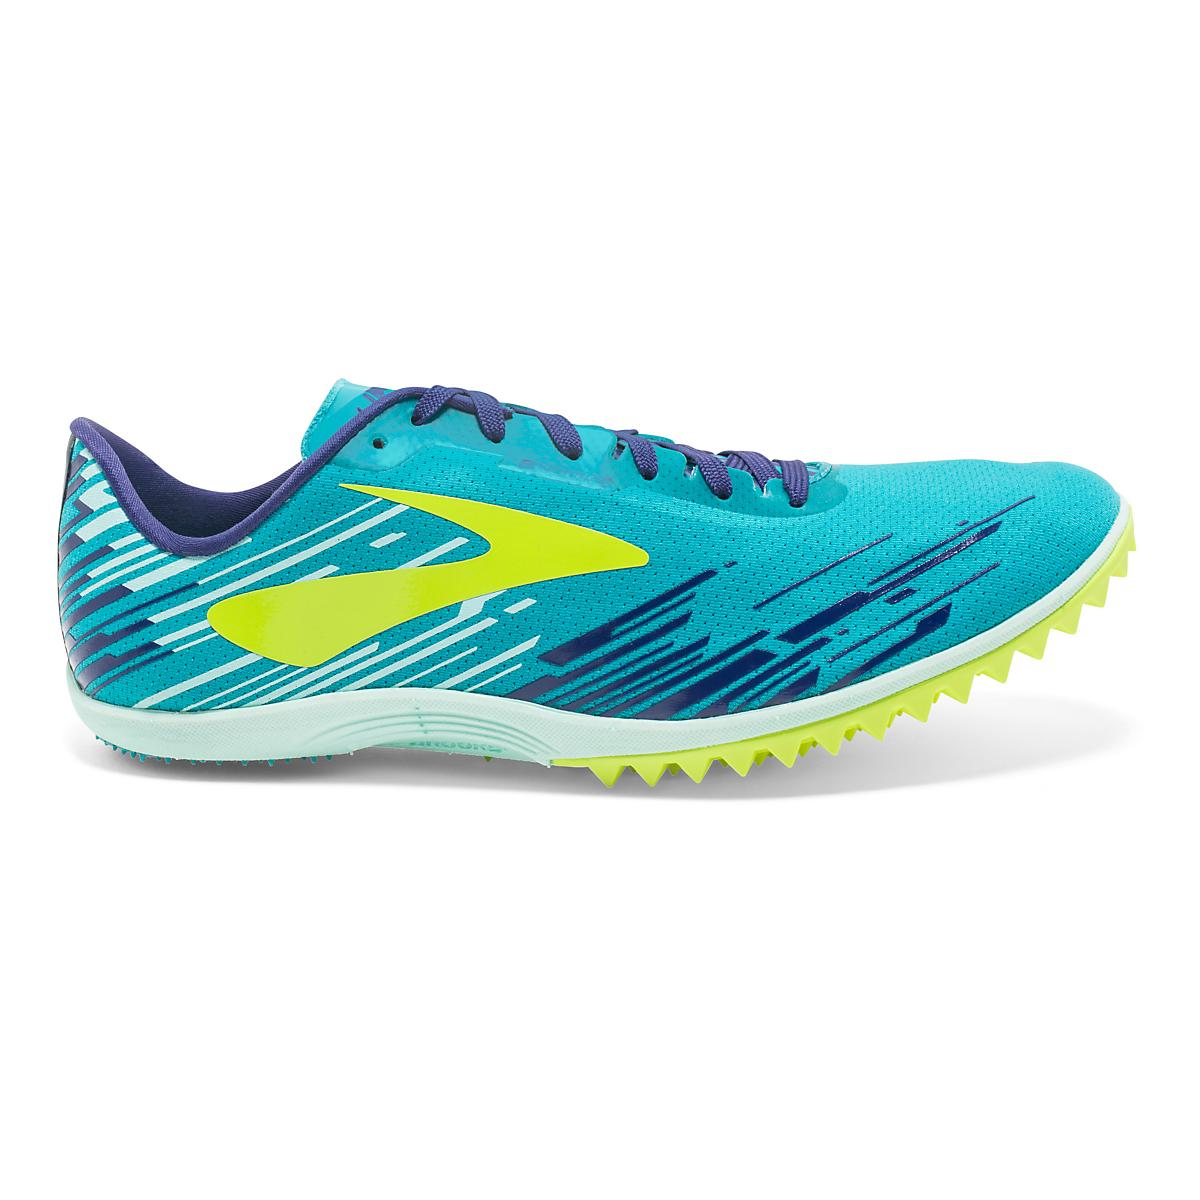 6fa2f08804c Womens Brooks Mach 18 Spikeless Cross Country Shoe at Road Runner Sports